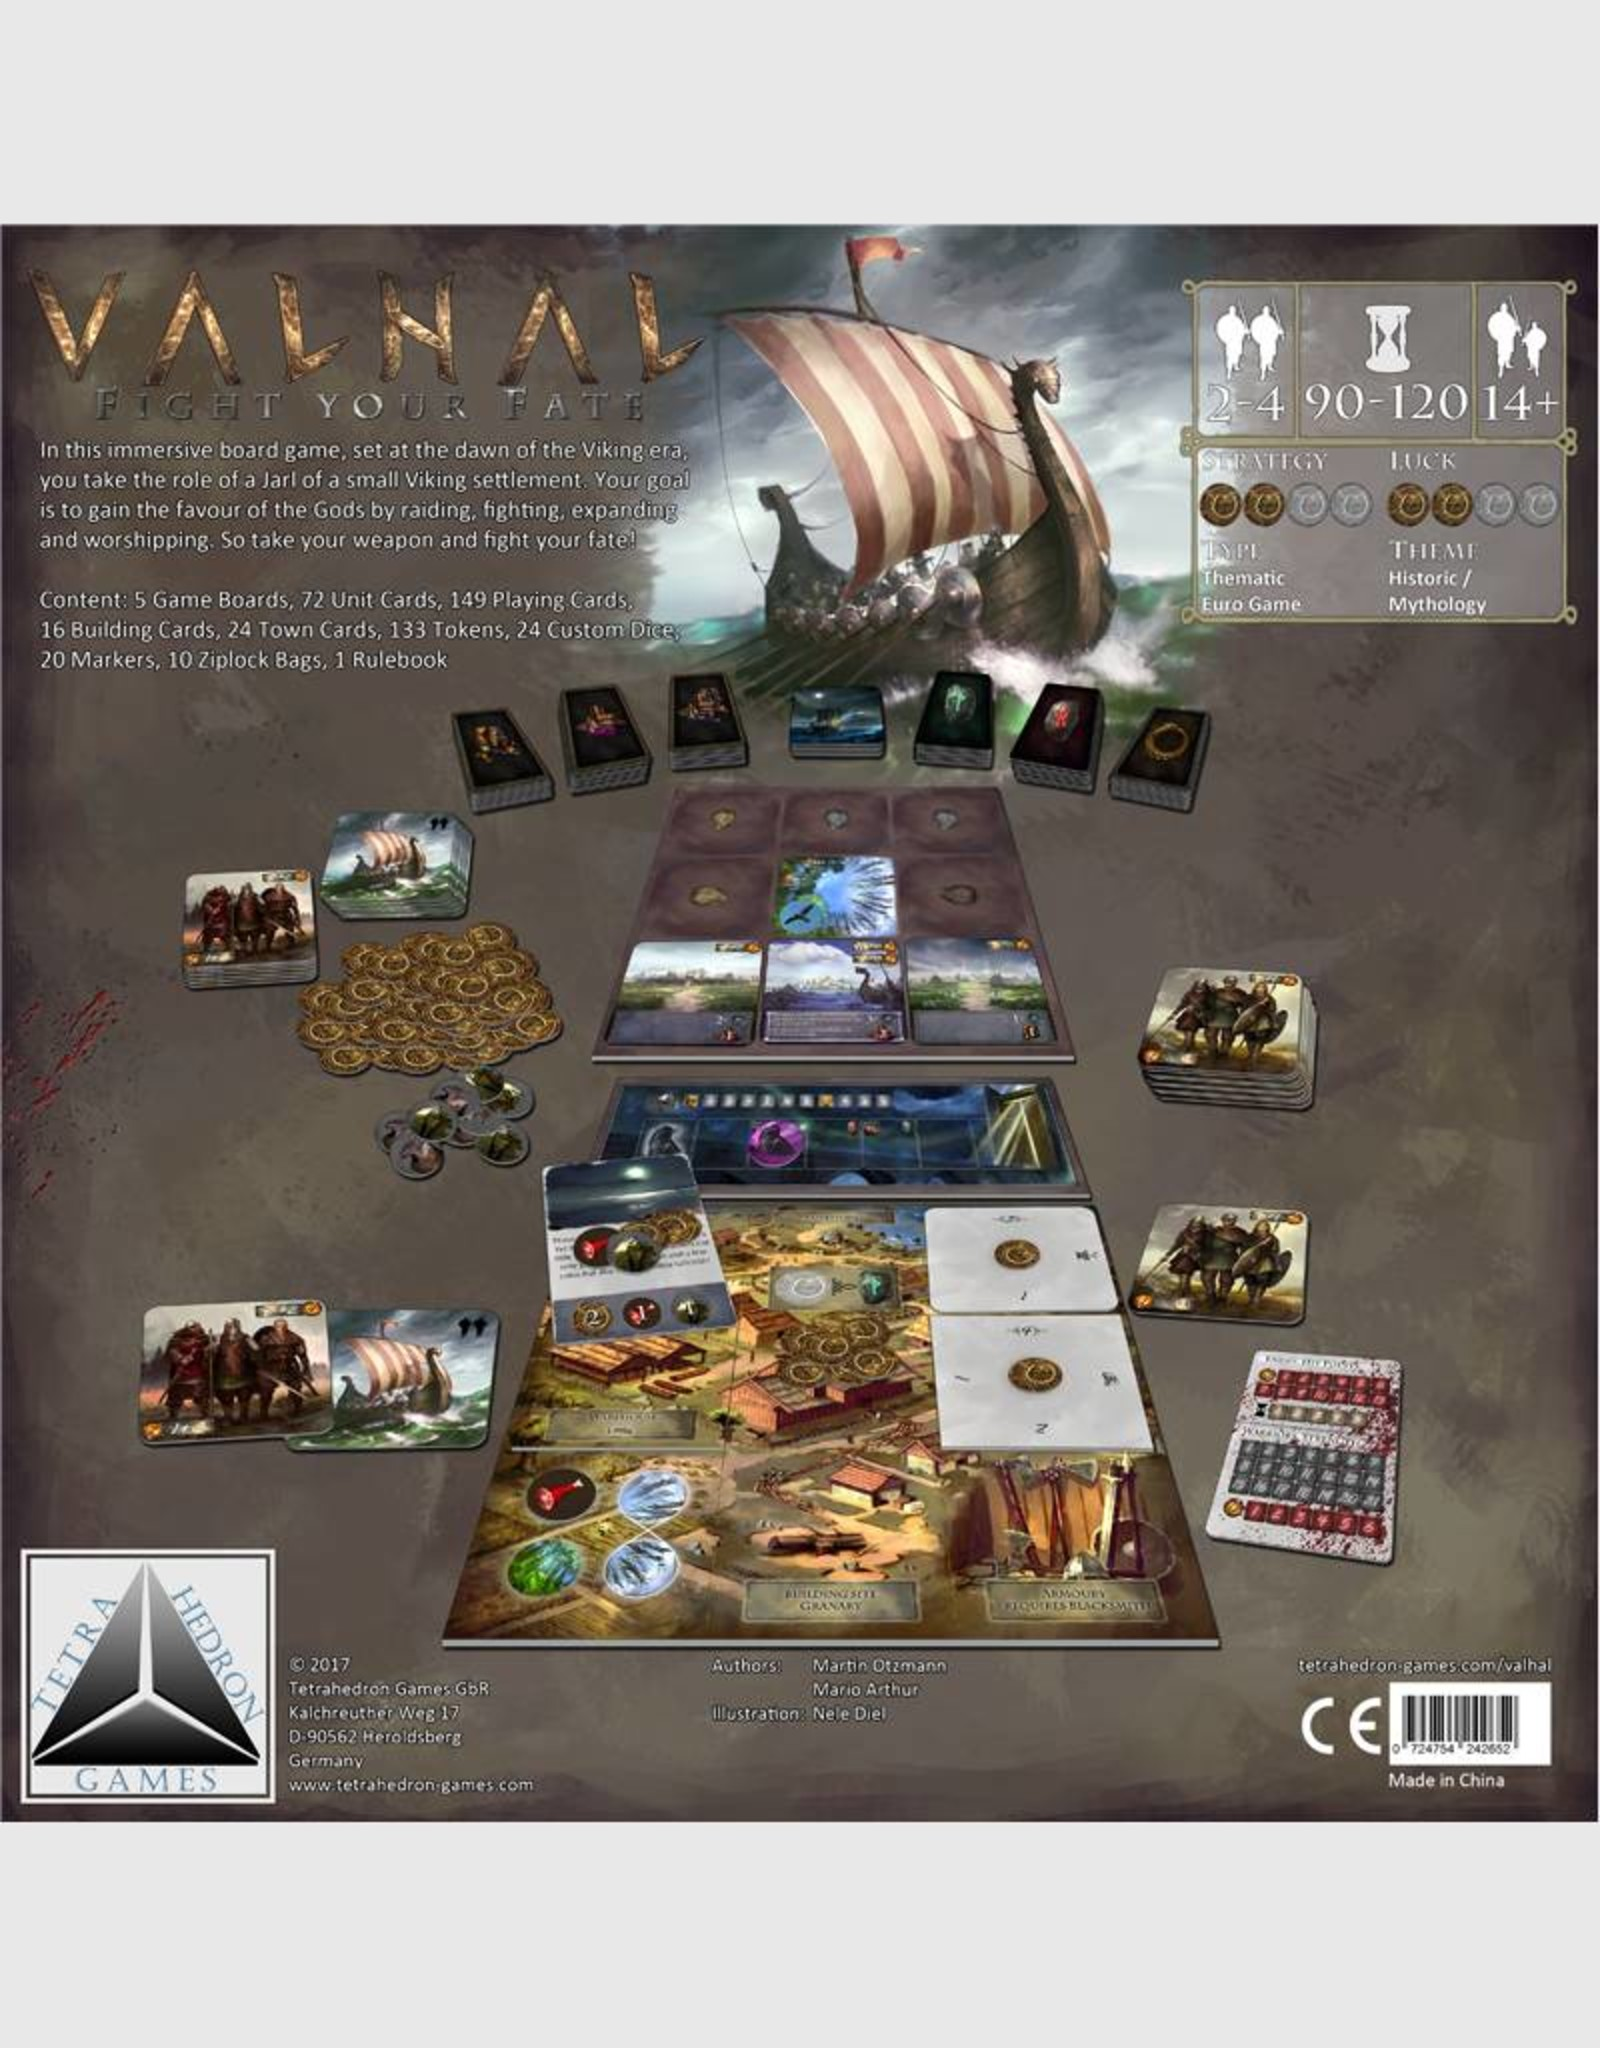 Valhal - Fight your Fate